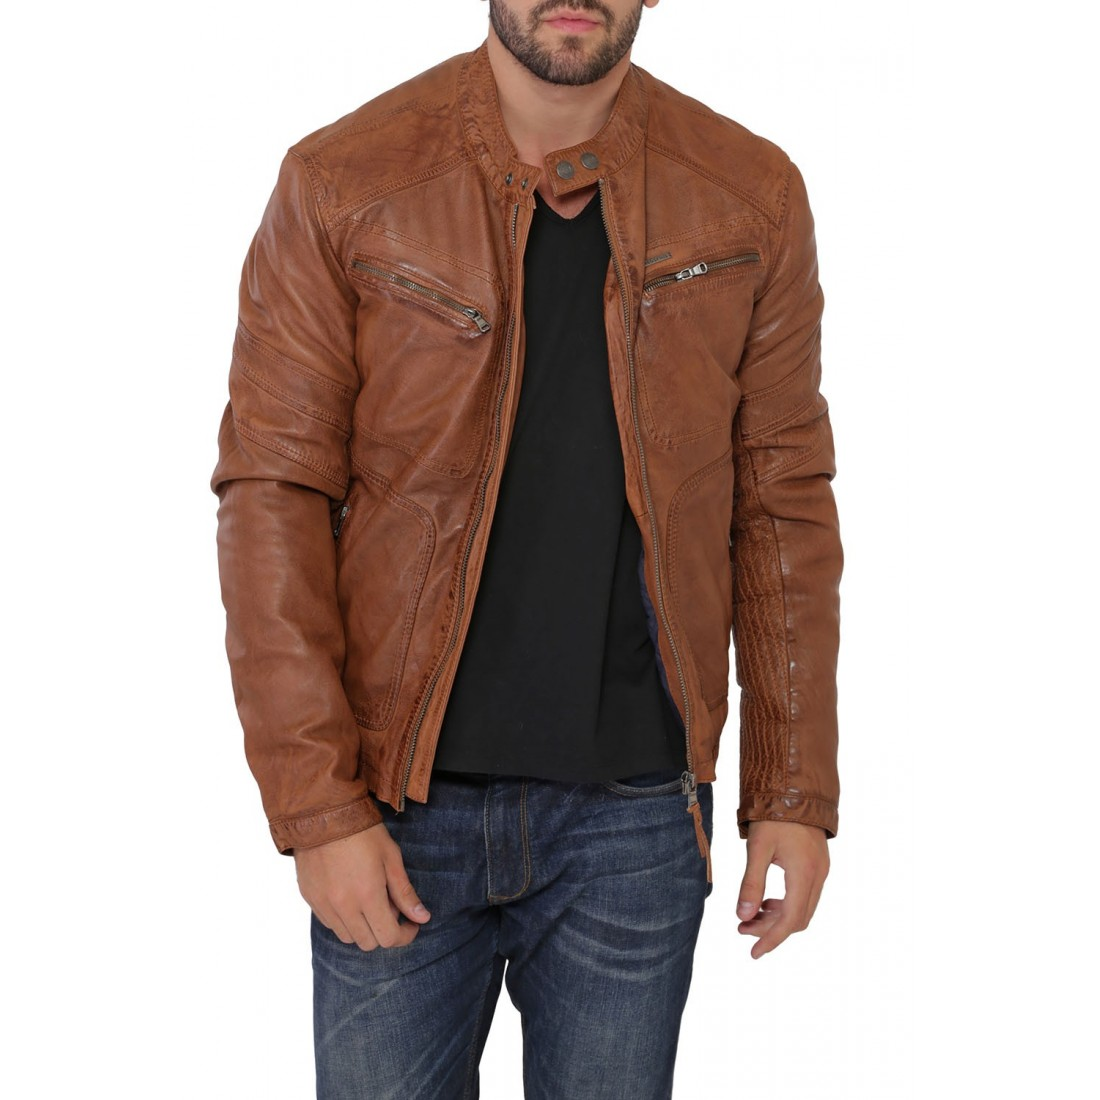 blouson en cuir ayrton calista redskins cognac pour homme. Black Bedroom Furniture Sets. Home Design Ideas